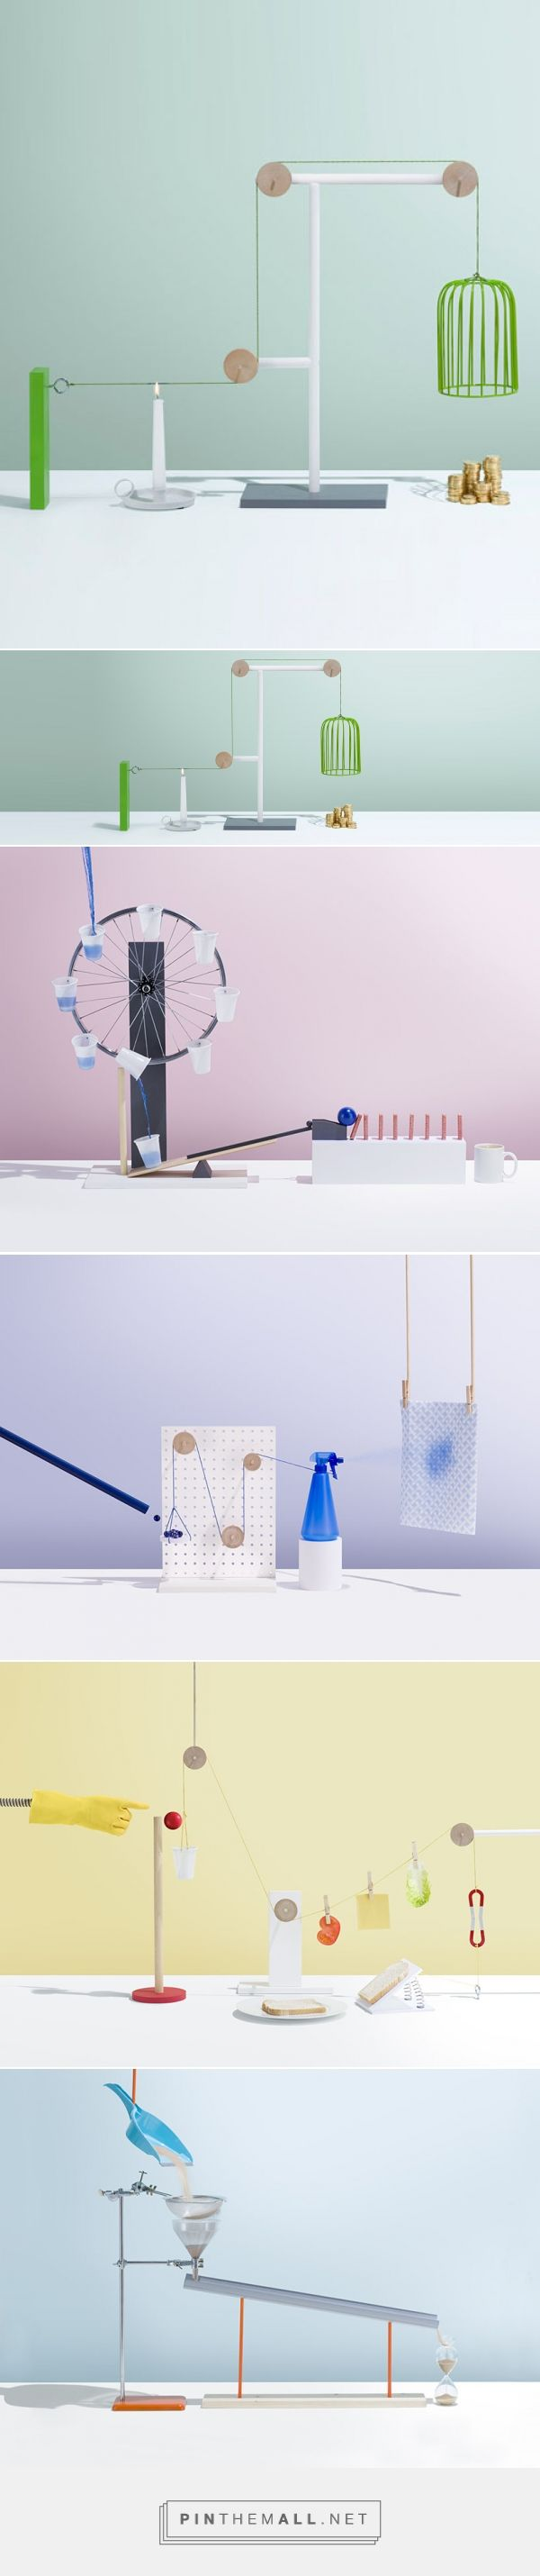 kyle bean+jonathan knowles+lauren catten's complex simplicities device is an updated look at the rube goldberg machine - created via https://pinthemall.net